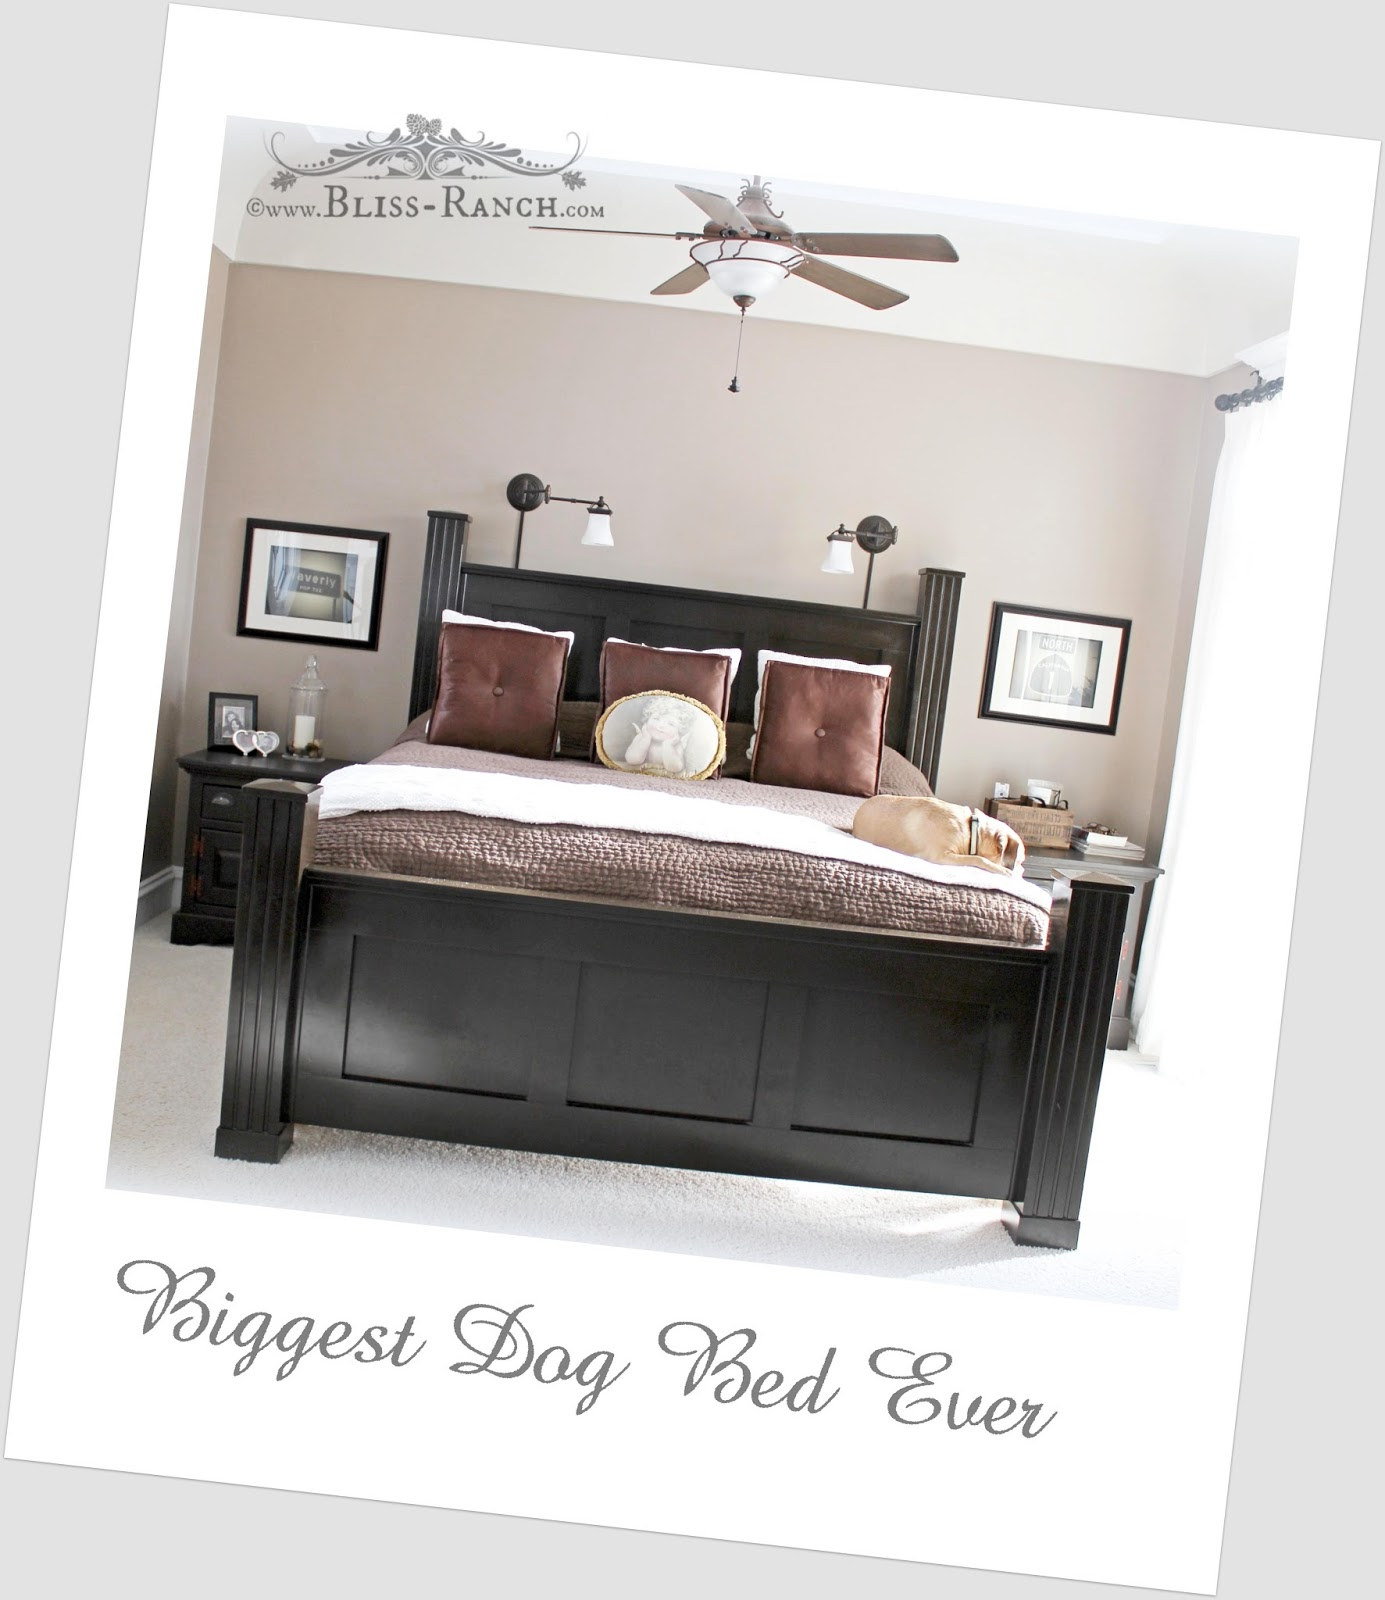 From My Front Porch To Yours- How I Found my Style Sundays-Master Bedroom Custom Bed, Bliss-Ranch.com